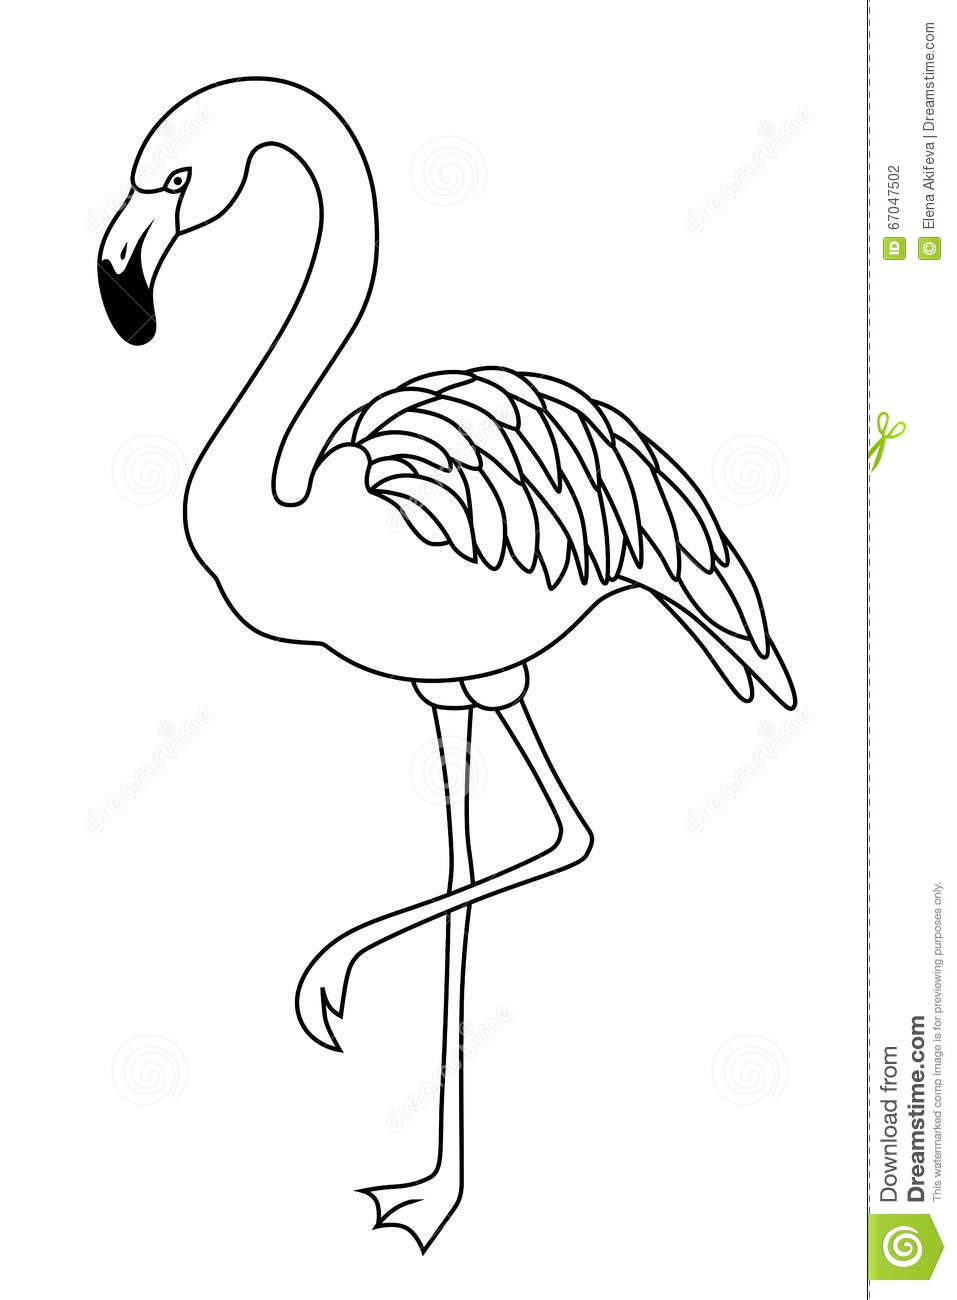 Flamingo Clipart Black And White.